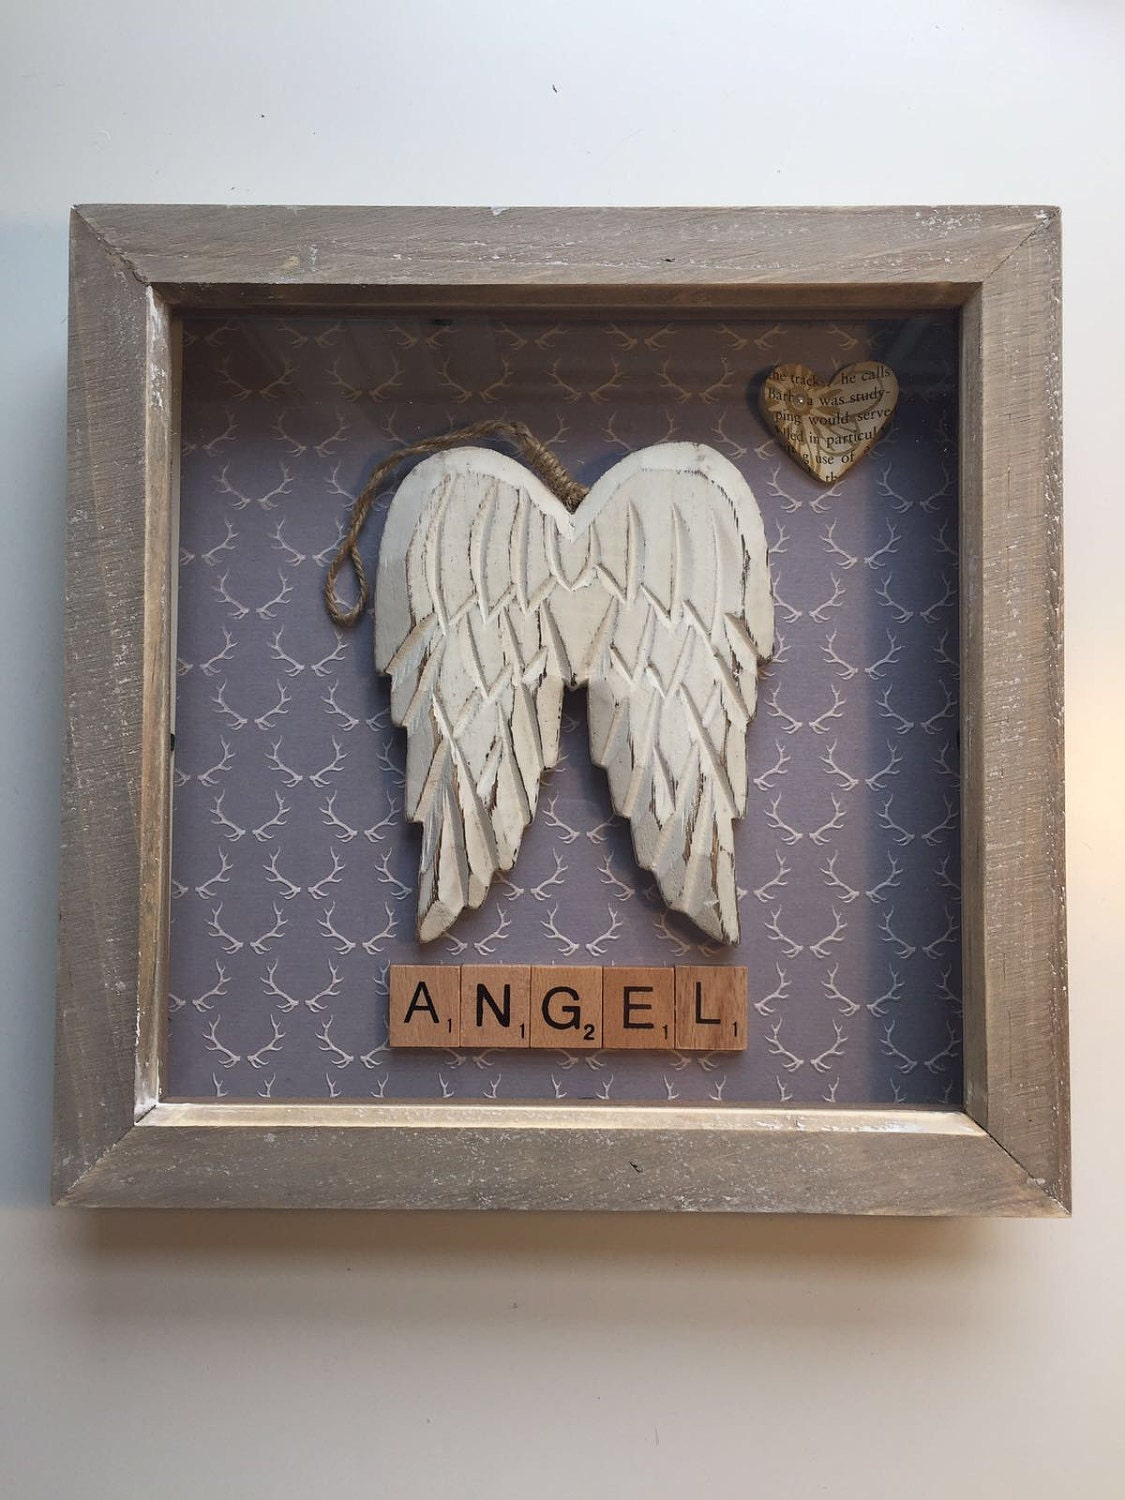 Angel wings picture frame from scrabbledabble99 on etsy studio angel wings picture frame jeuxipadfo Image collections